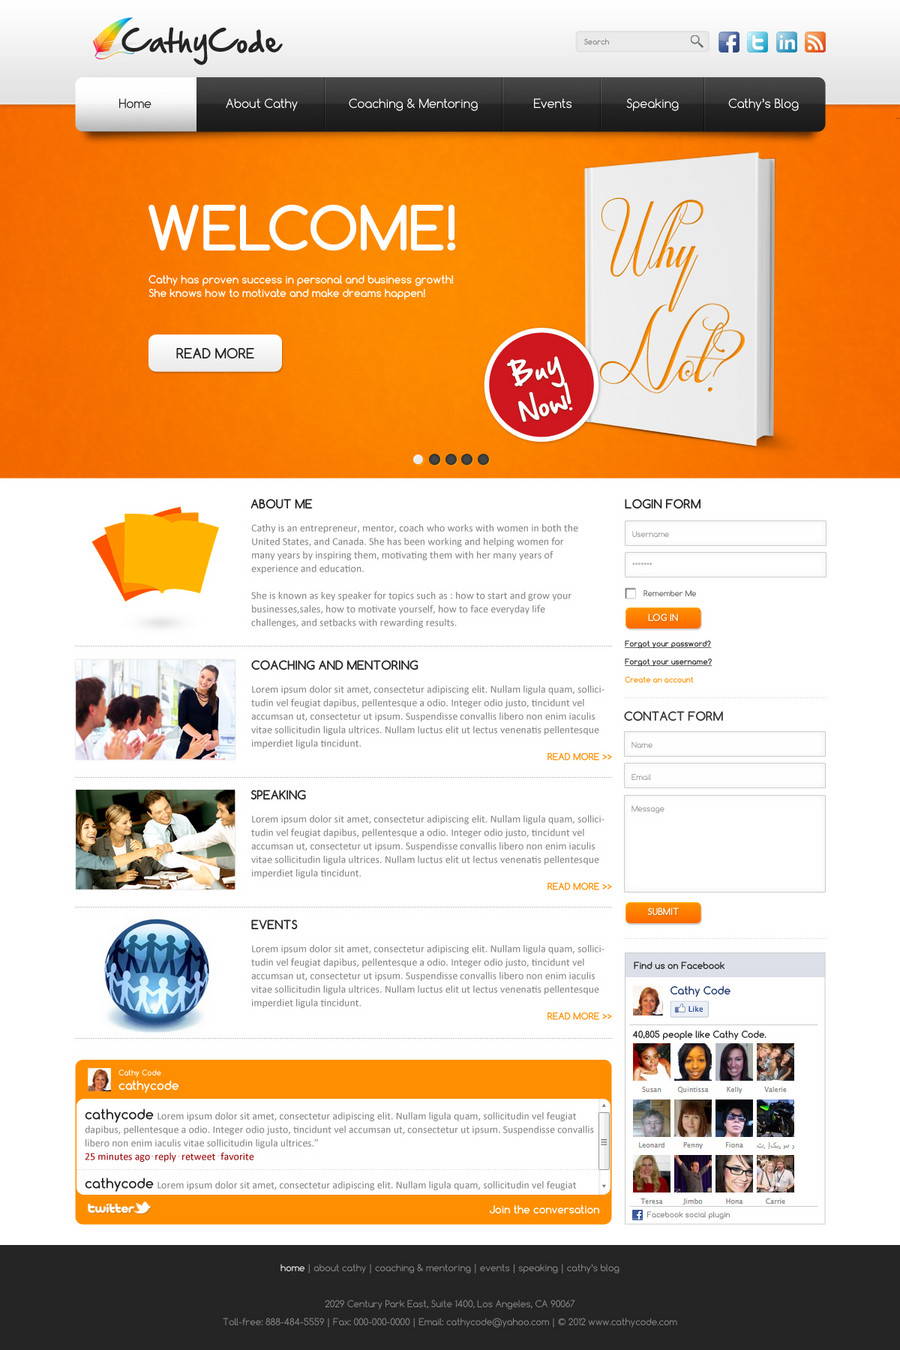 Web Template Design by Hasan Ahmed at Coroflot.com